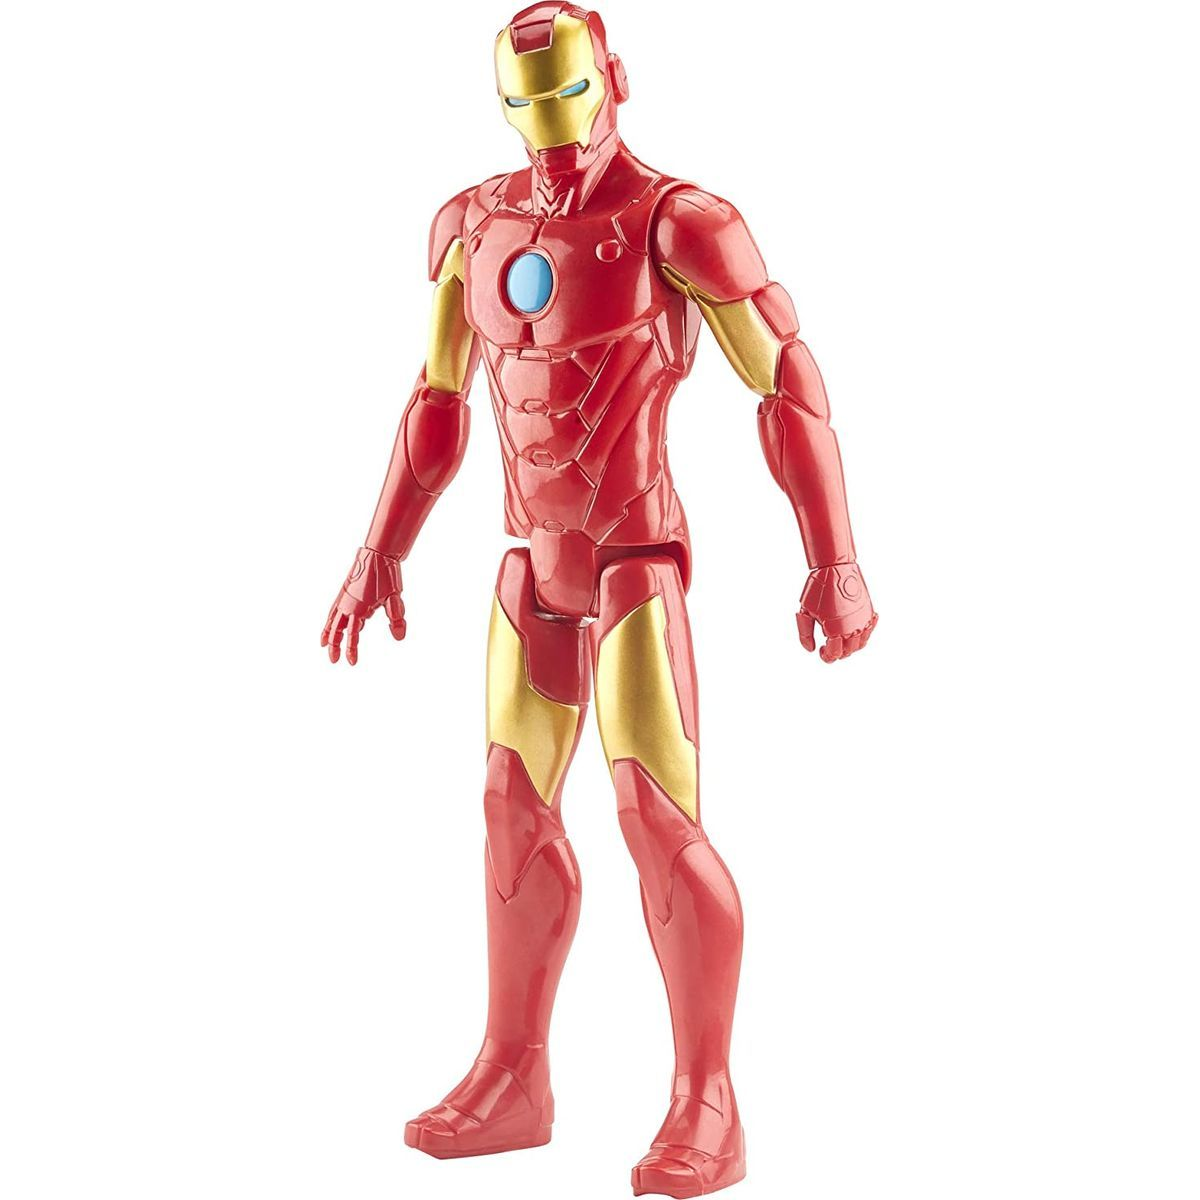 Hasbro Avengers 30 cm figurka Titan hero Innovation Iron Man Red